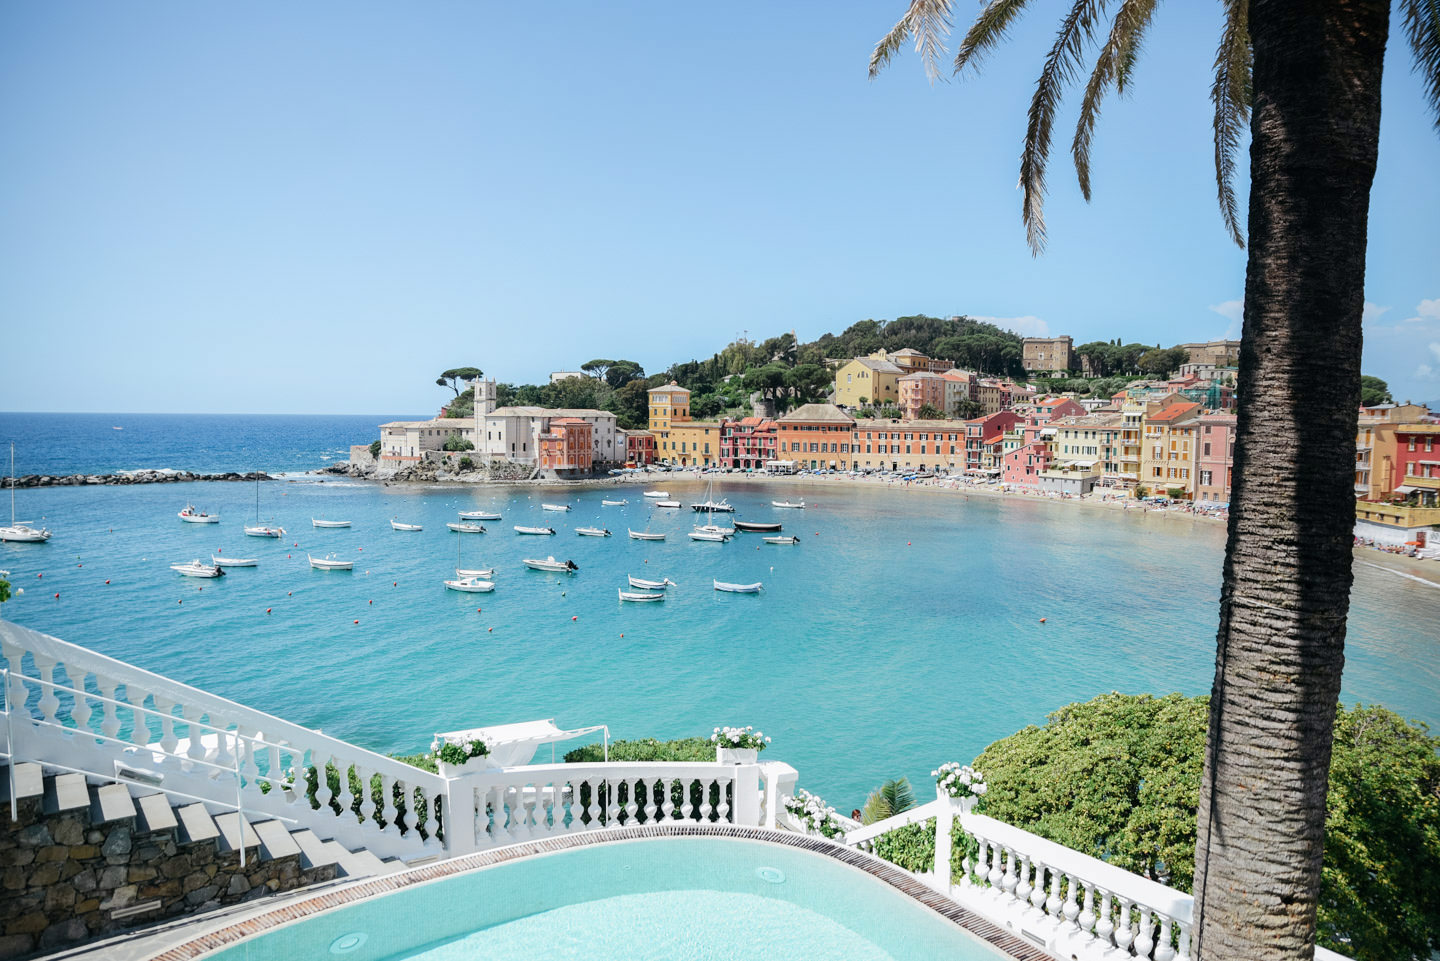 Blog-Mode-And-The-City-Lifestyle-Italie-Sestri-Levante-Cinque-Terre-11